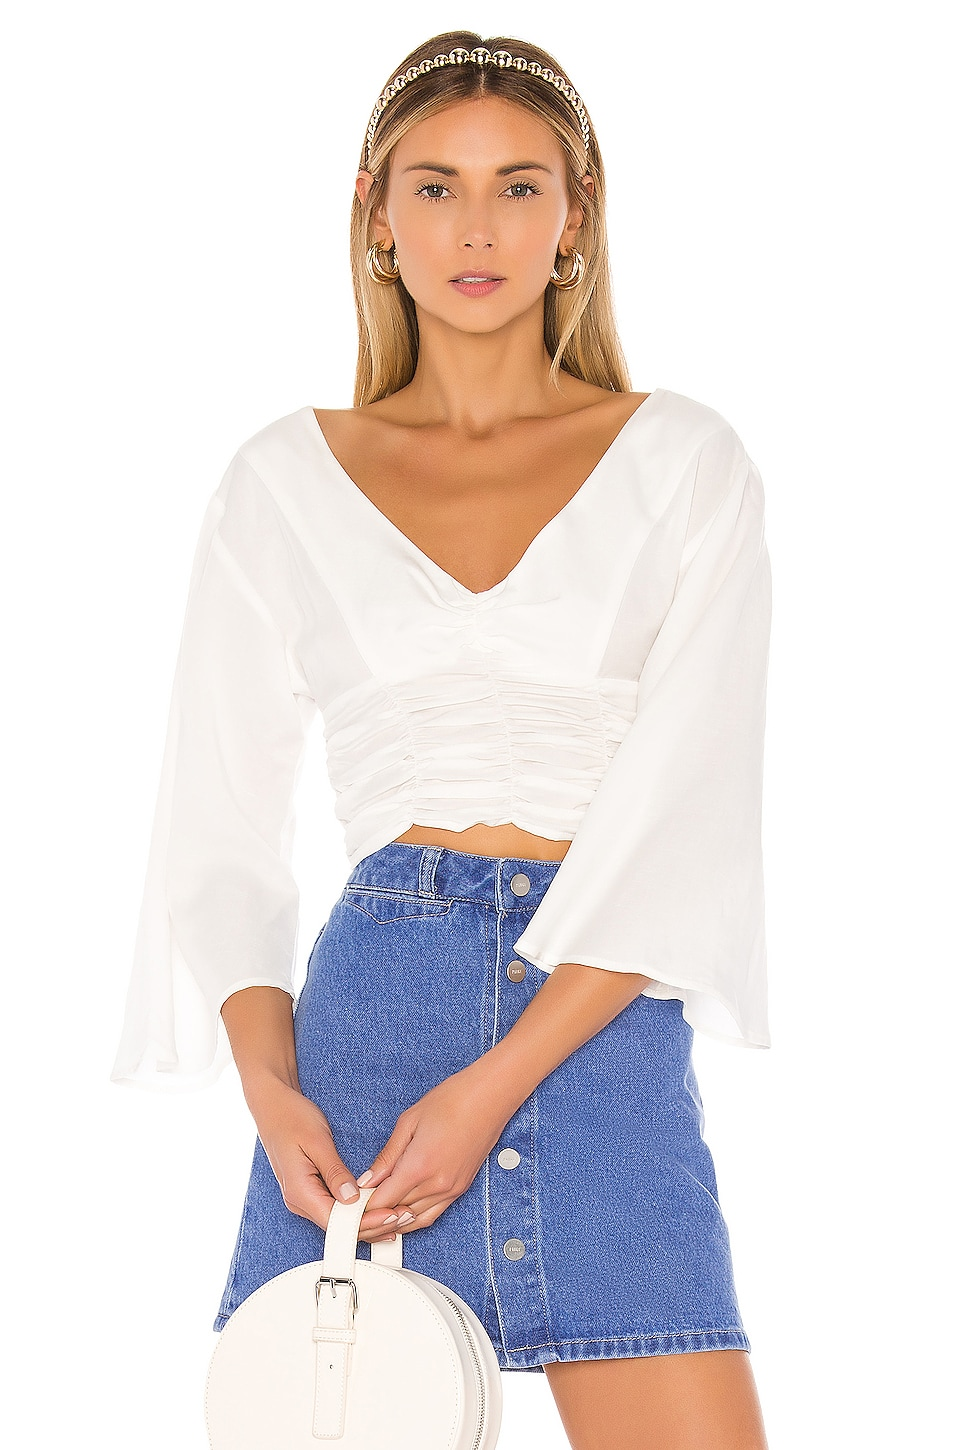 L'Academie The Antoine Top in White